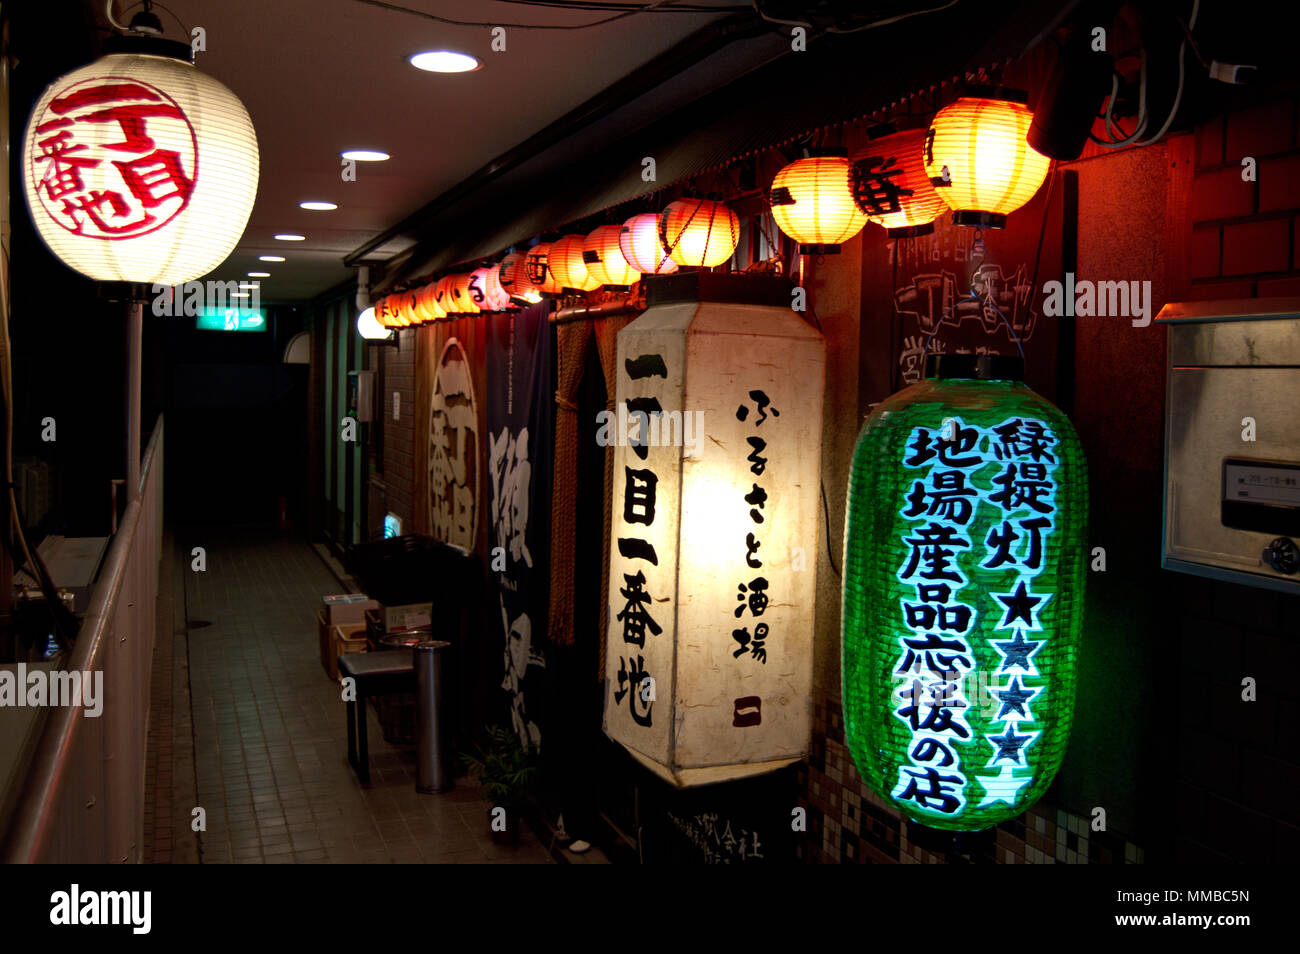 Exterior Of Traditional Japanese Restaurant In Tokyo Japan Stock Photo Alamy